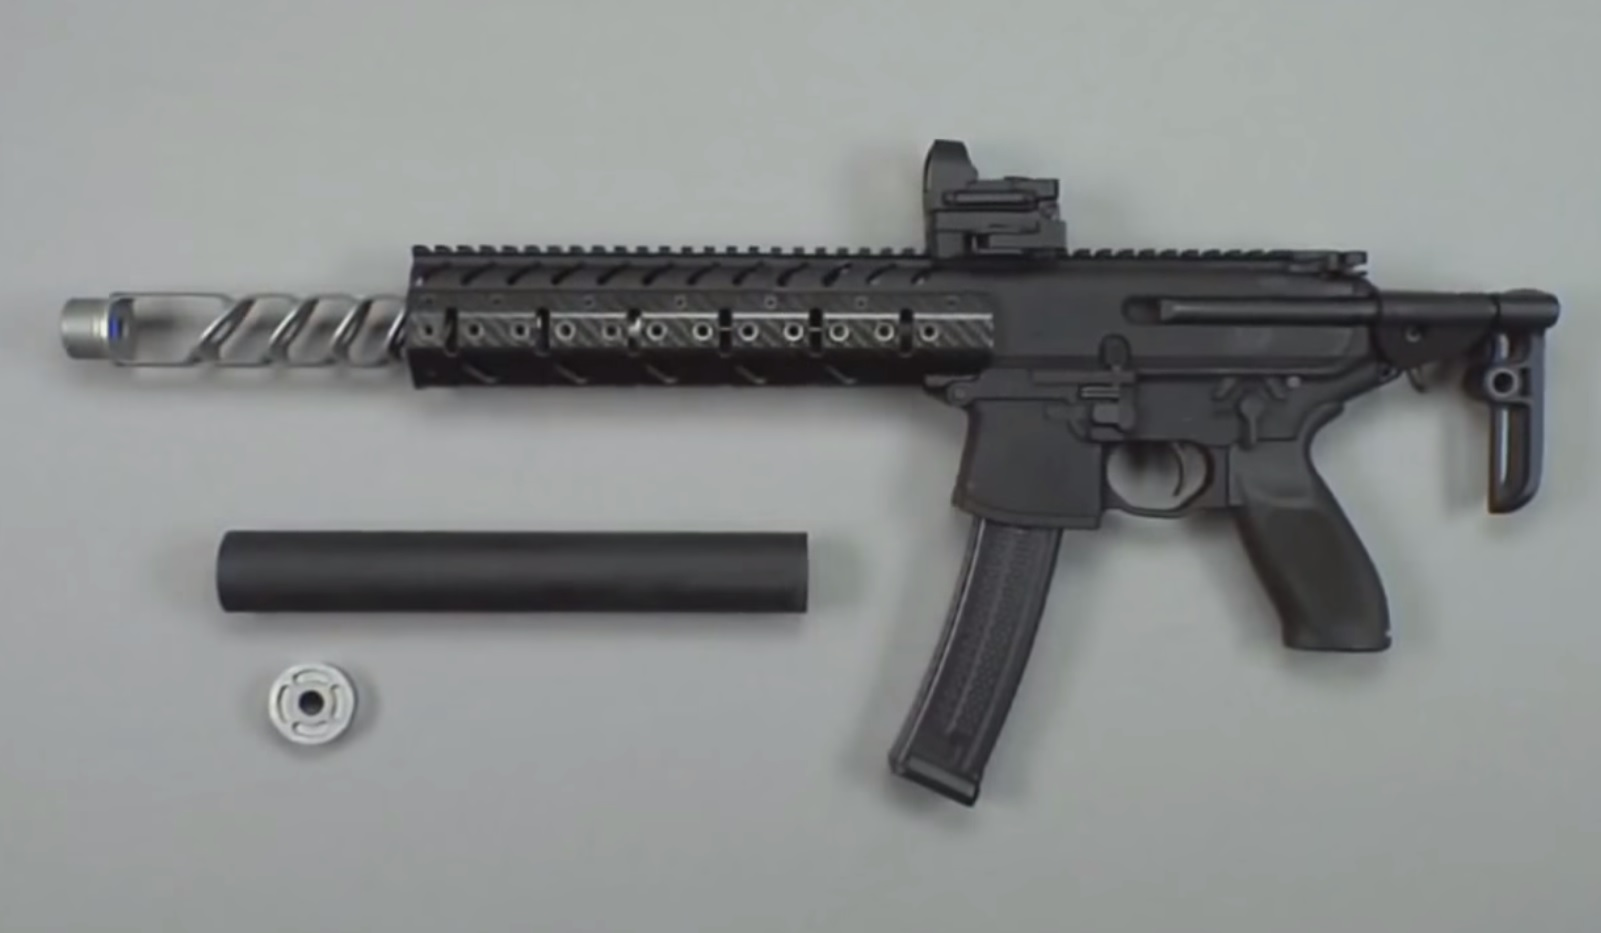 federal judge upholds atf classification of muzzle brake as silencer